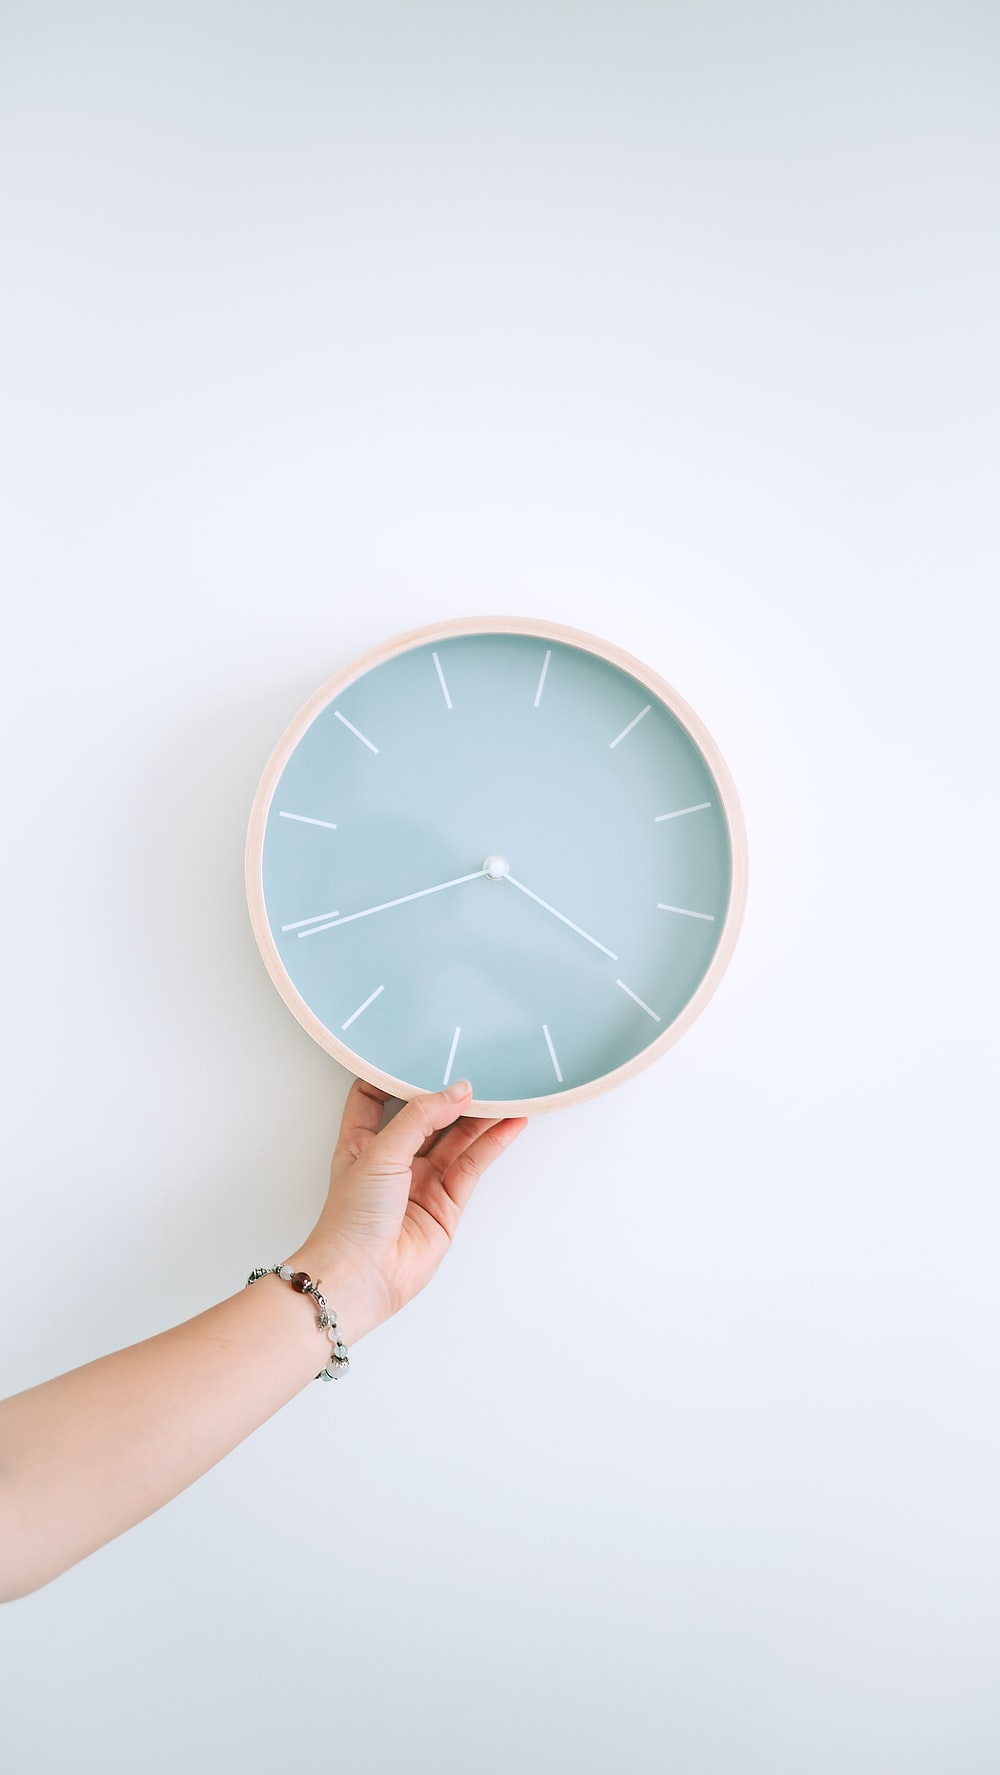 round grey wall clock